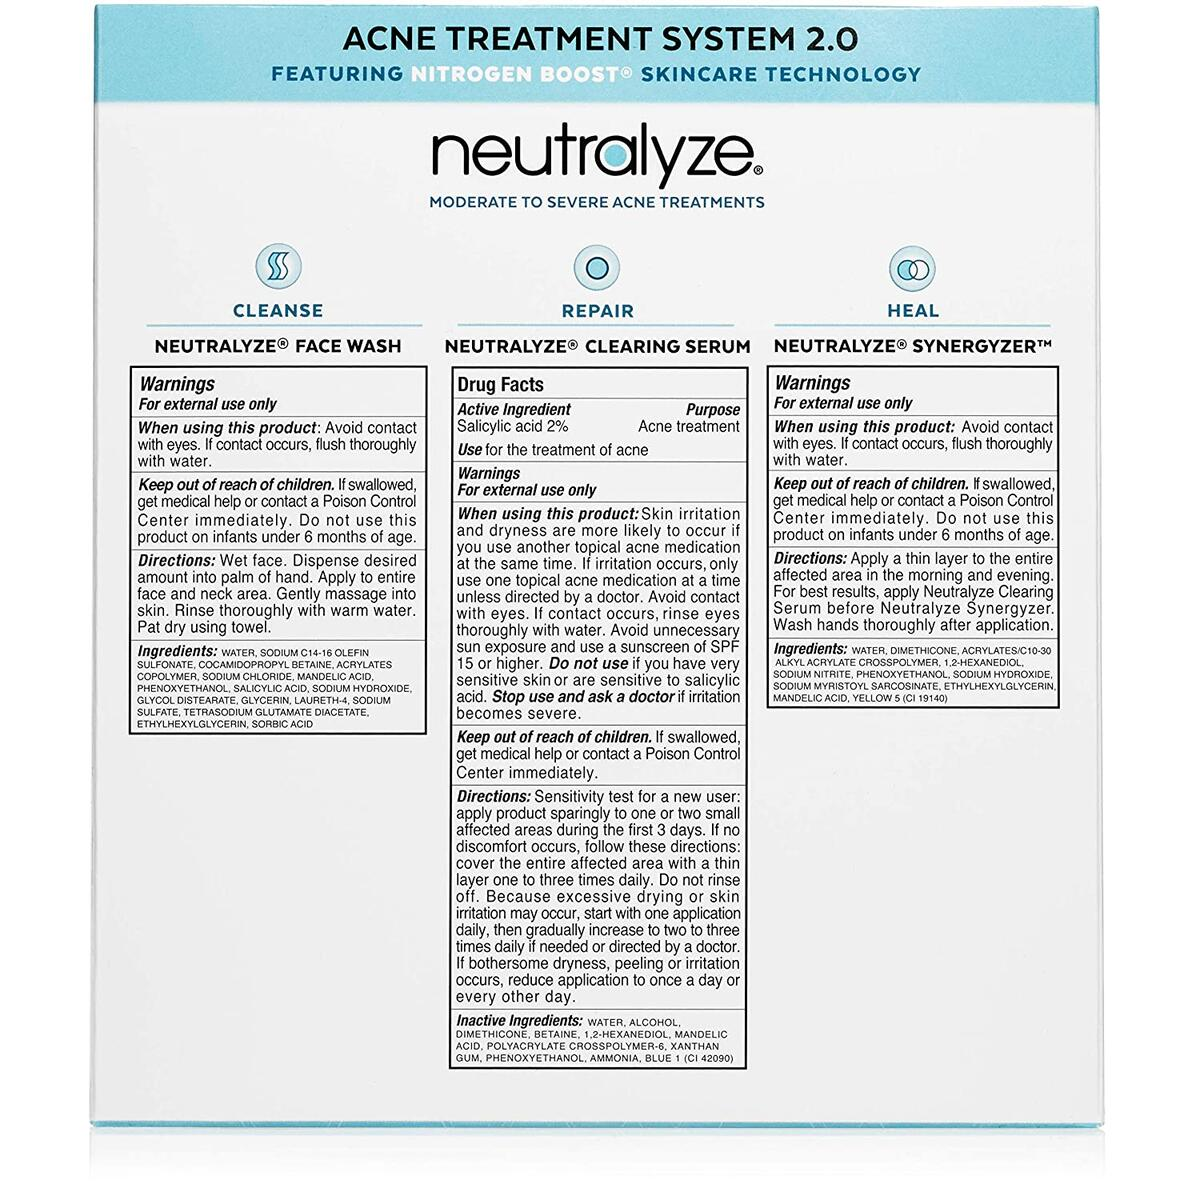 Neutralyze Moderate To Severe Acne Treatment Kit 2.0 | Maximum Strength Acne Treatment System Includes Face Wash, Clearing Serum, Synergyzer + Nitrogen Boost Skincare Technology (60 Day)